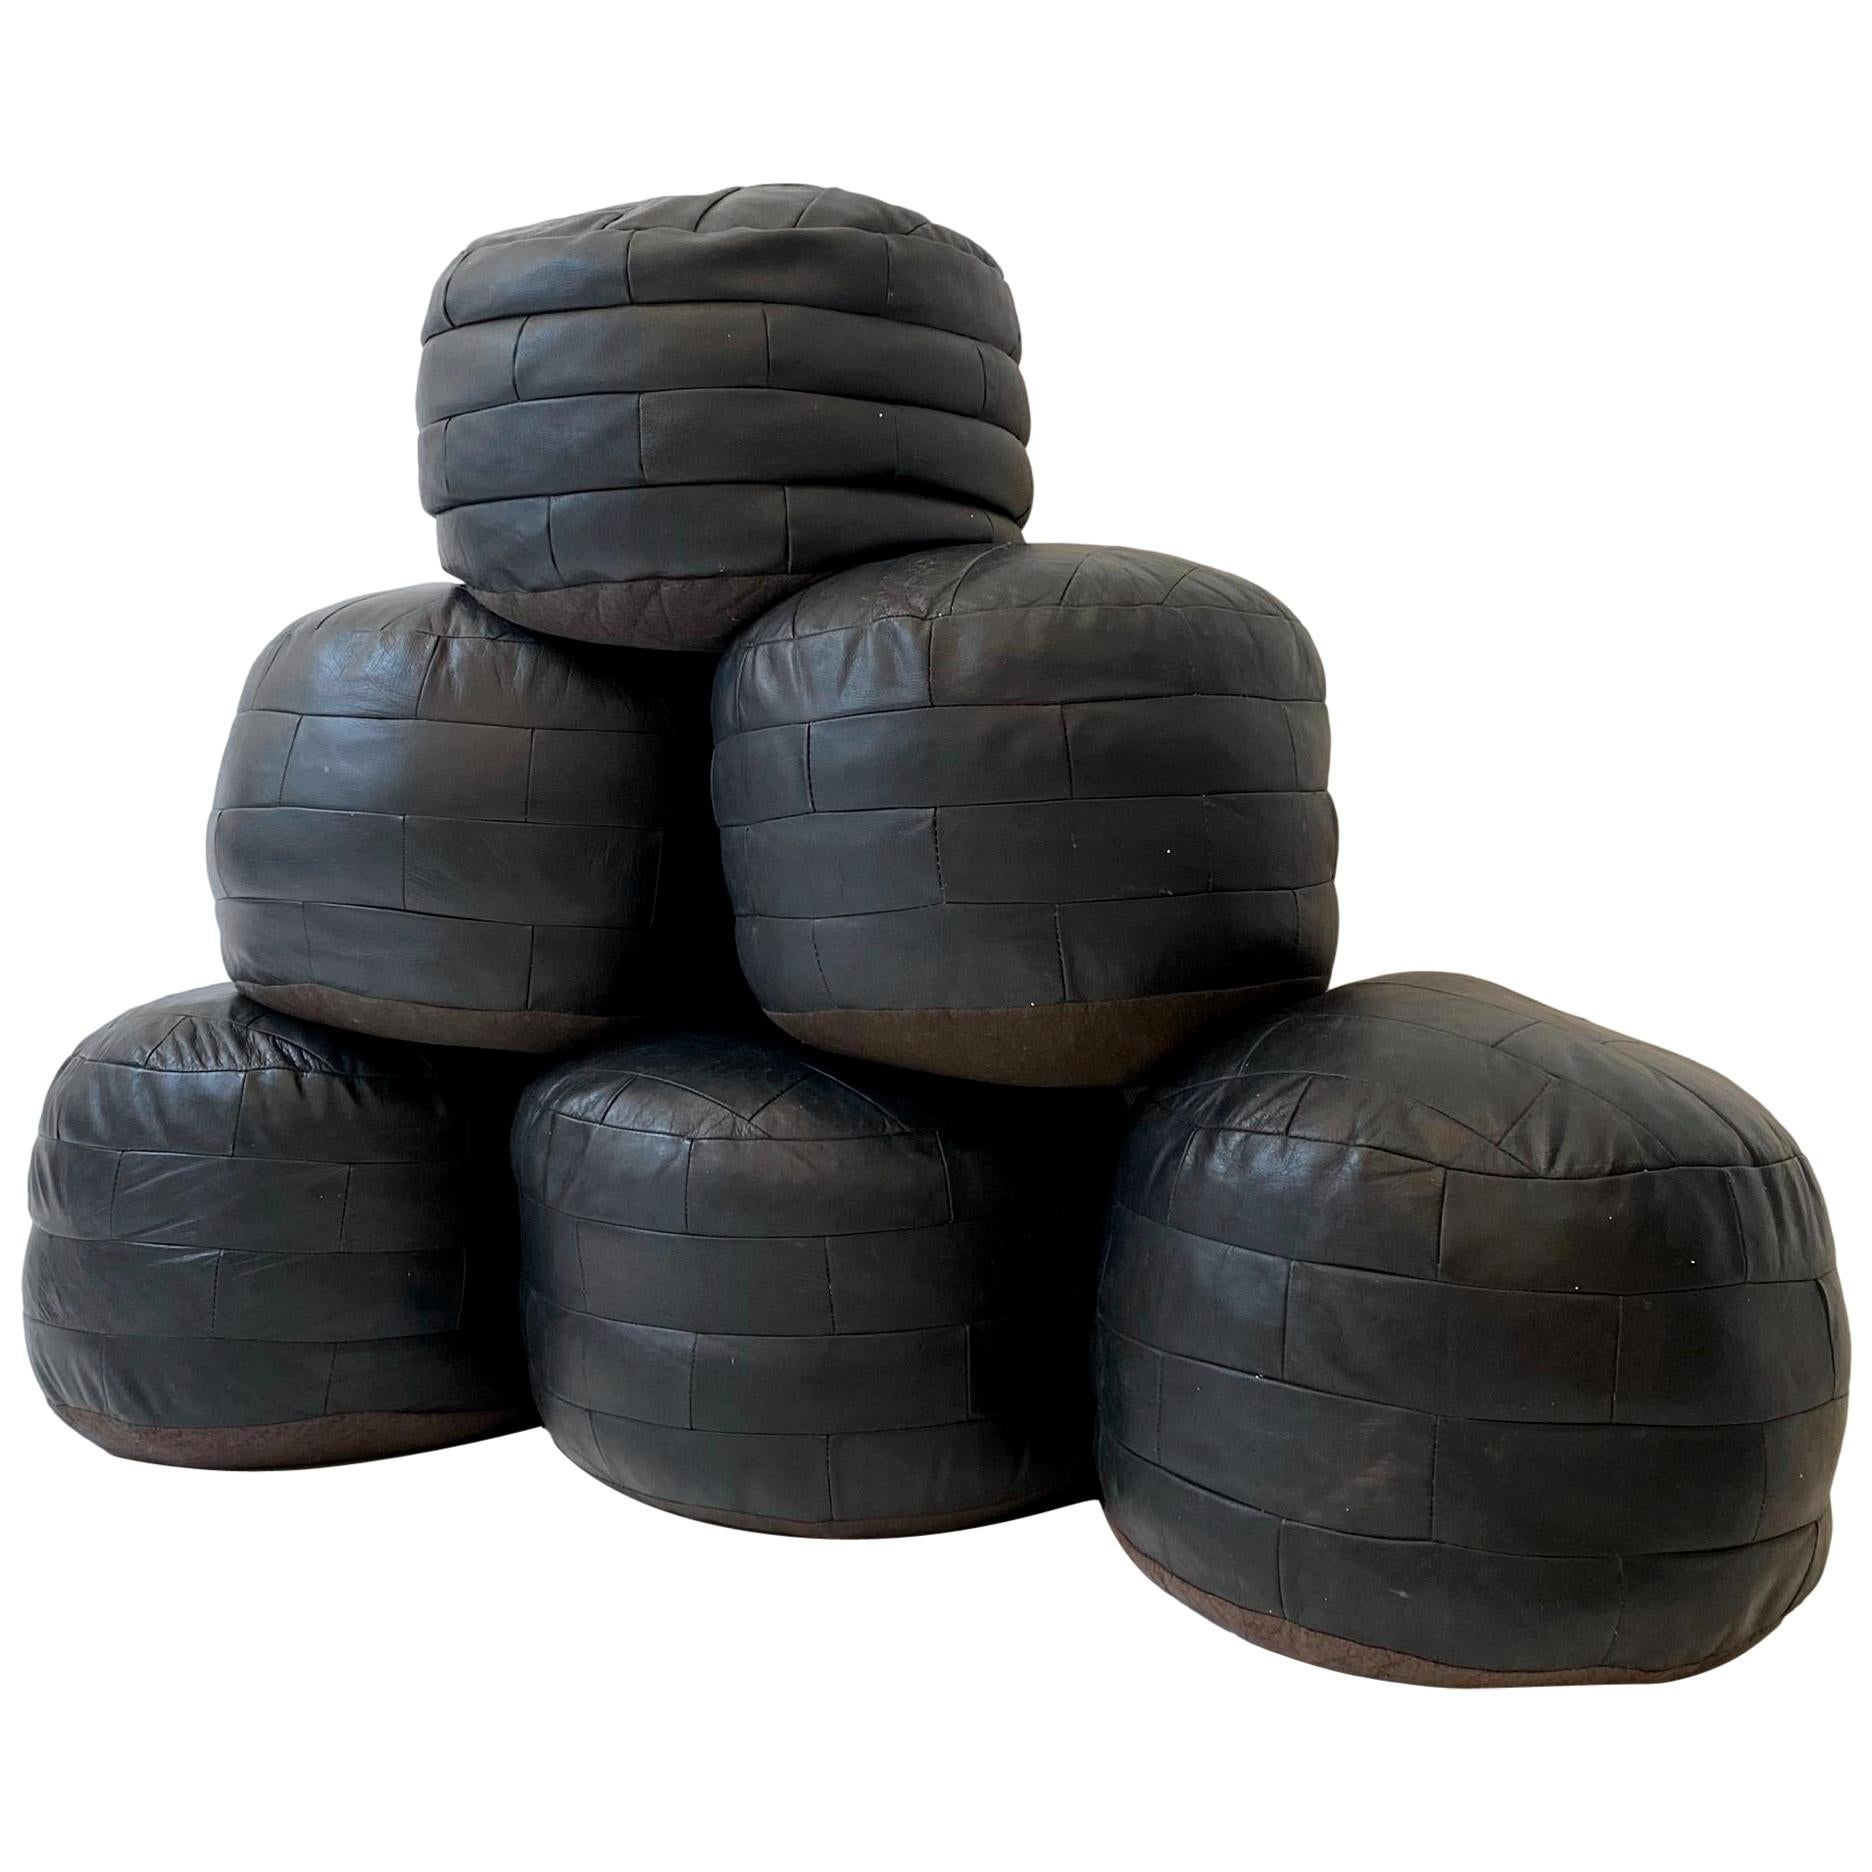 De Sede Patchwork Black Leather Poufs